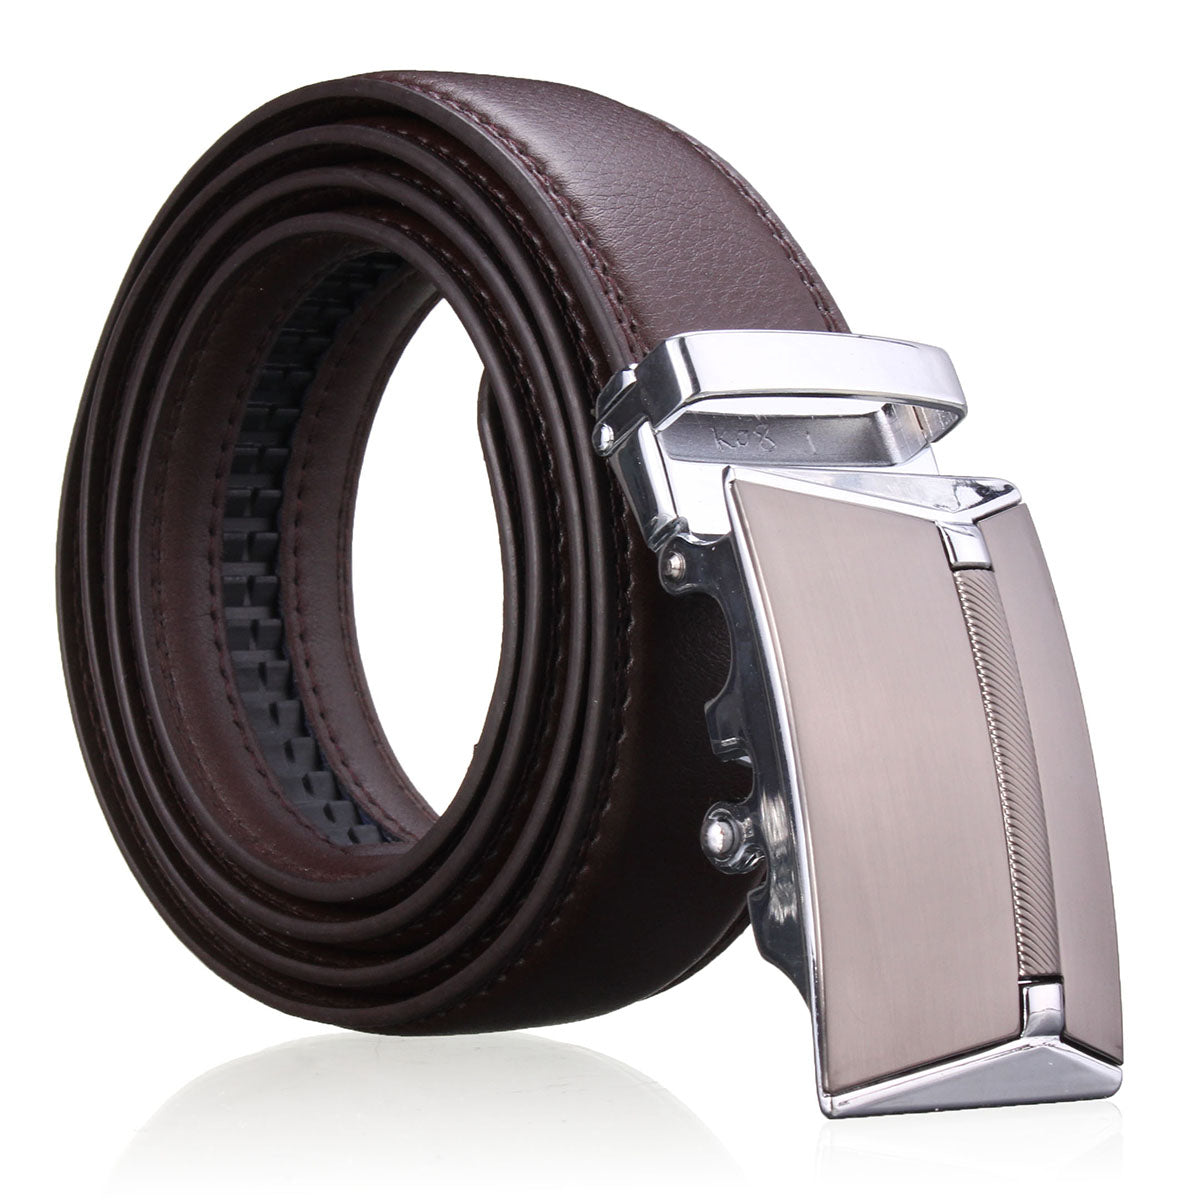 cozyrex,Men Second Floor Cowhide Leather Belt Automatic Buckle Black Brown Waist Strap Waistband,CozyRex,